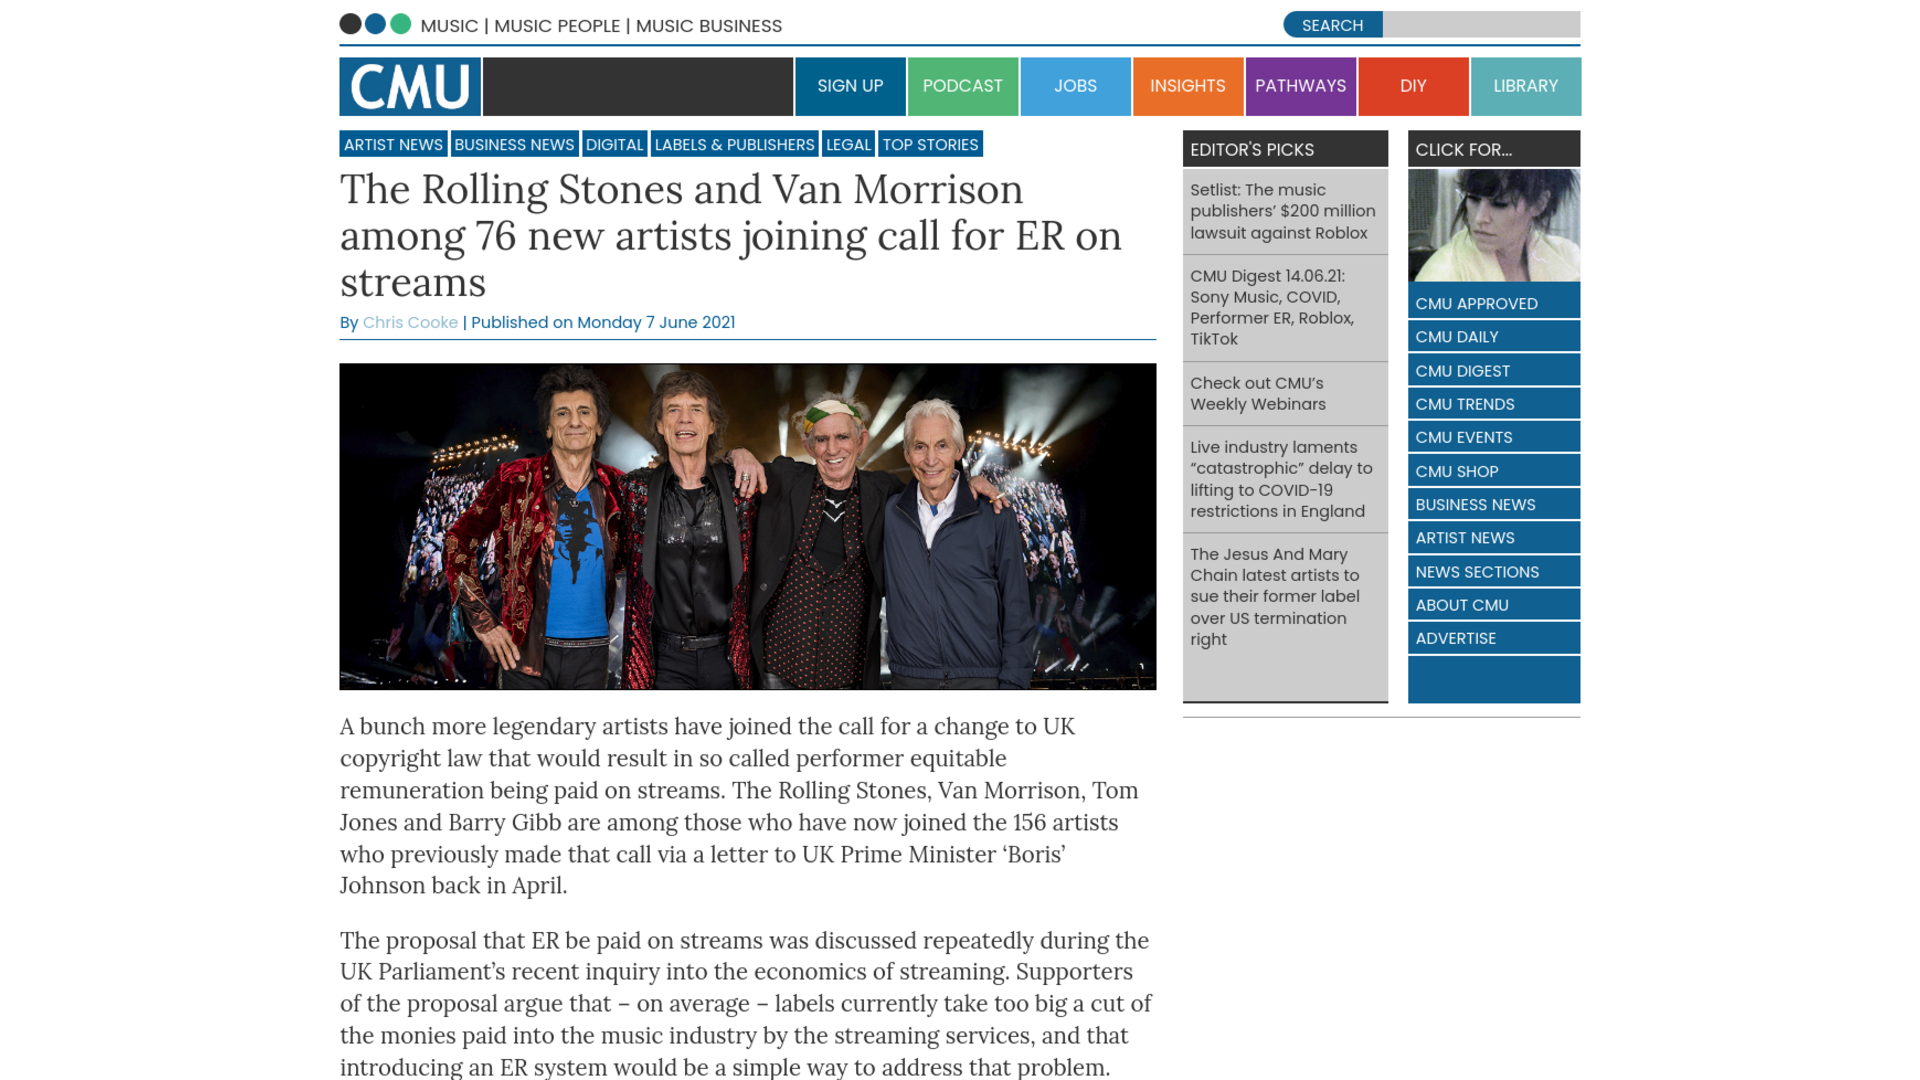 Fairness Rocks News The Rolling Stones and Van Morrison among 76 new artists joining call for ER on streams